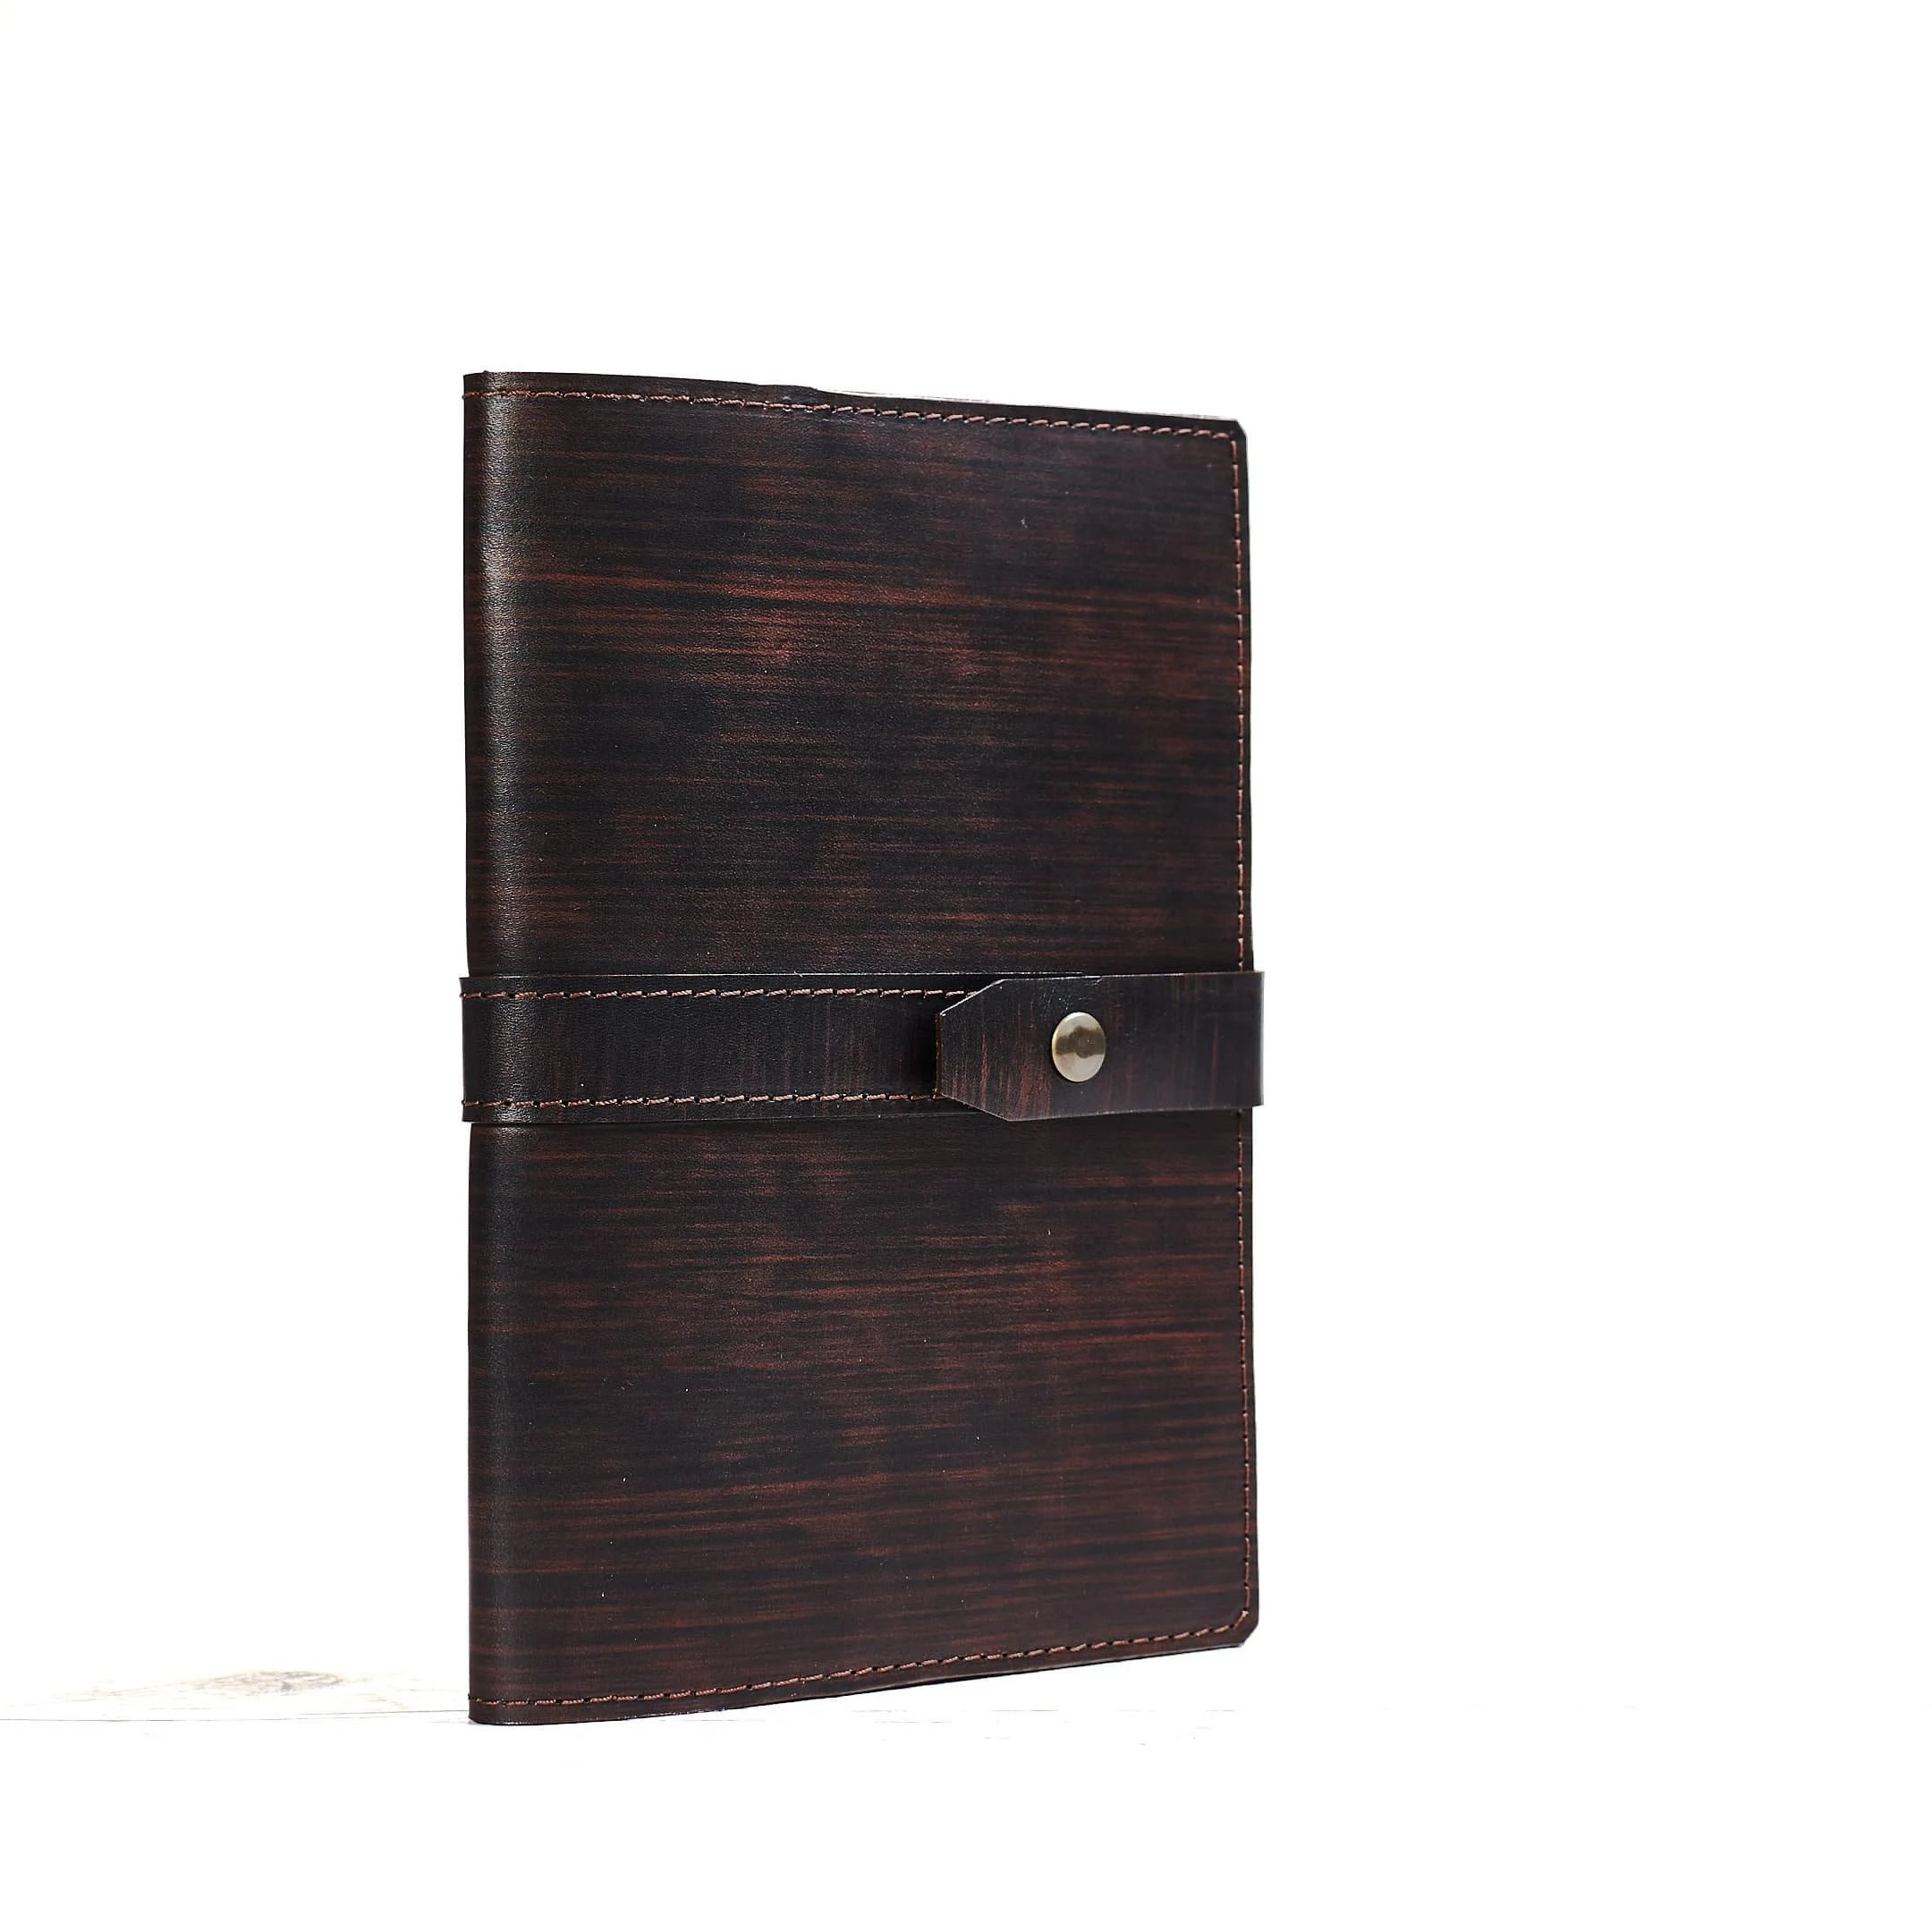 Moleskine A5 A5 Leather Journal Cover Notebook Cover Leather Cover Brown